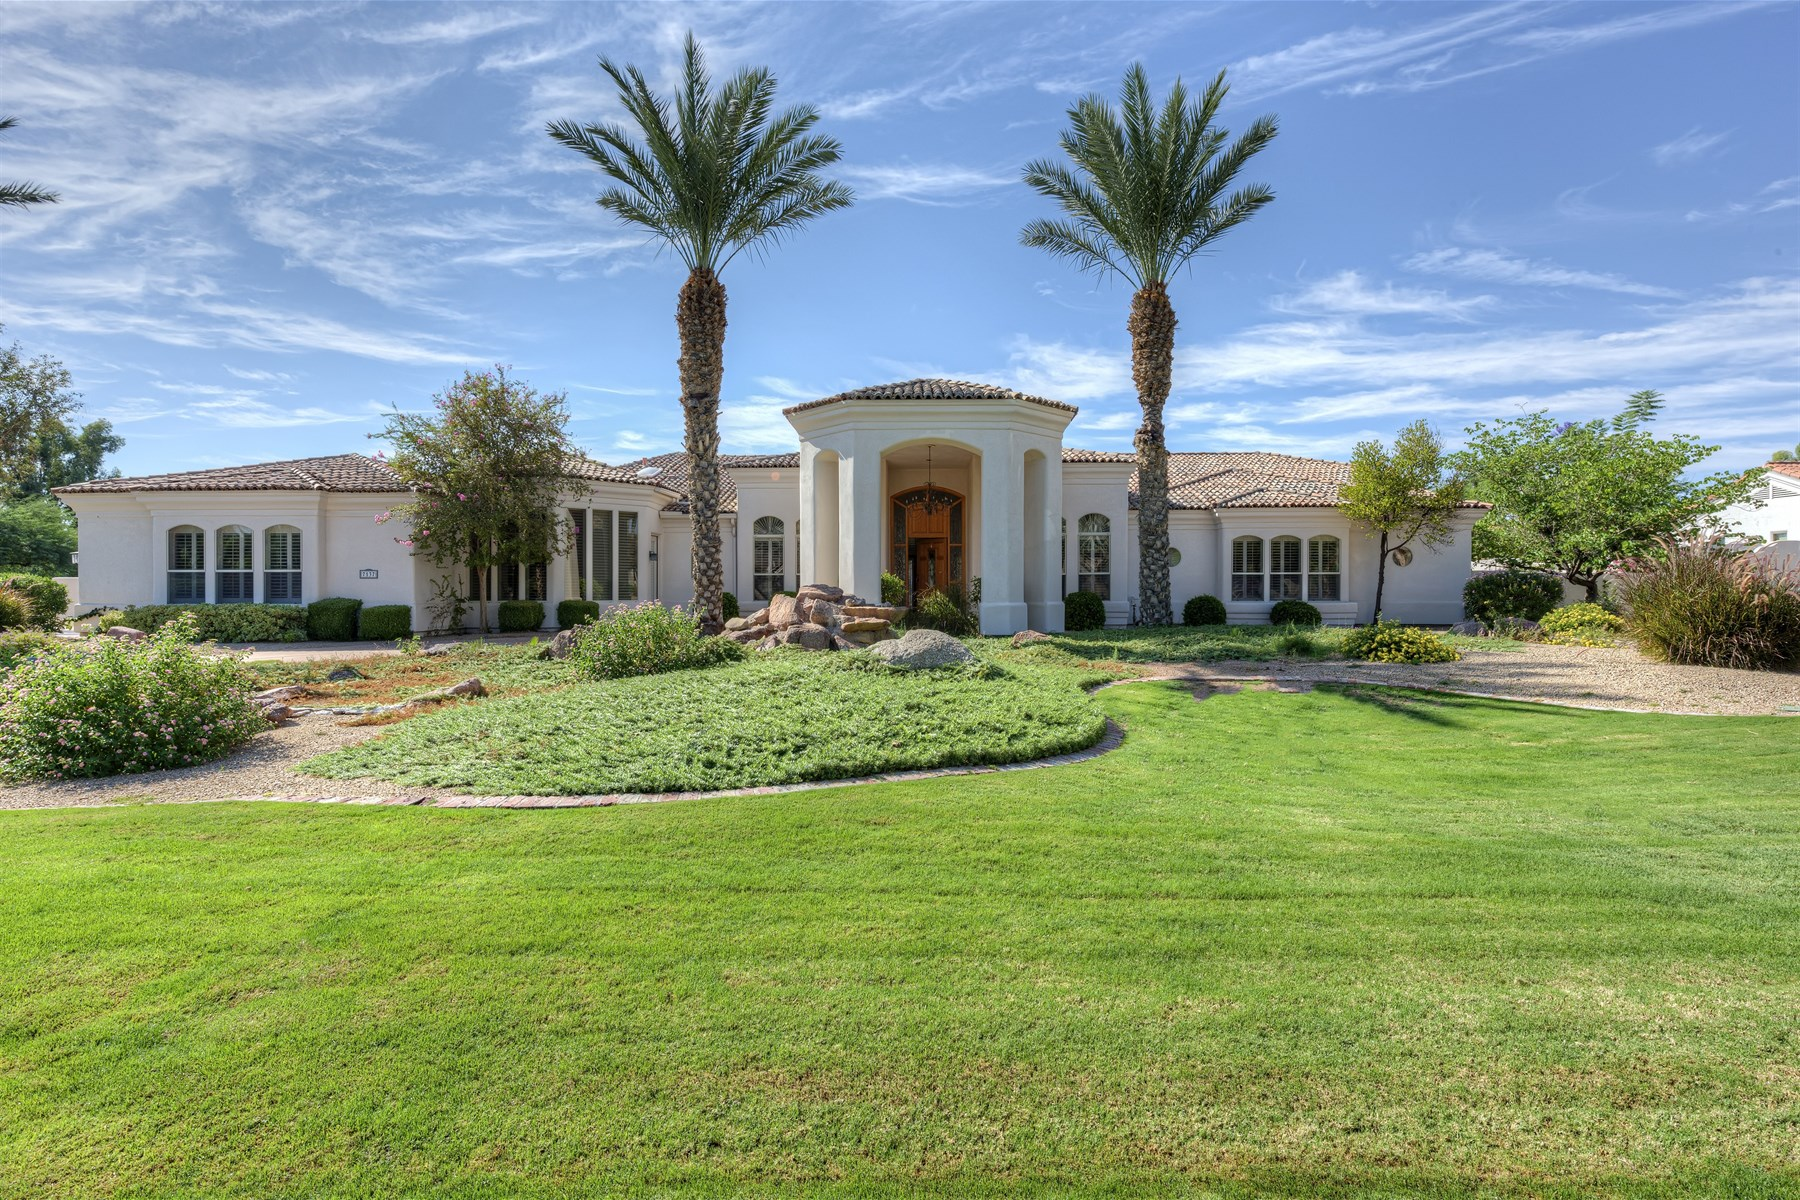 Casa para uma família para Venda às Rare opportunity to enjoy privacy in the exclusive gated community, Cheney Place 7137 E Bluebird Ln Paradise Valley, Arizona 85253 Estados Unidos